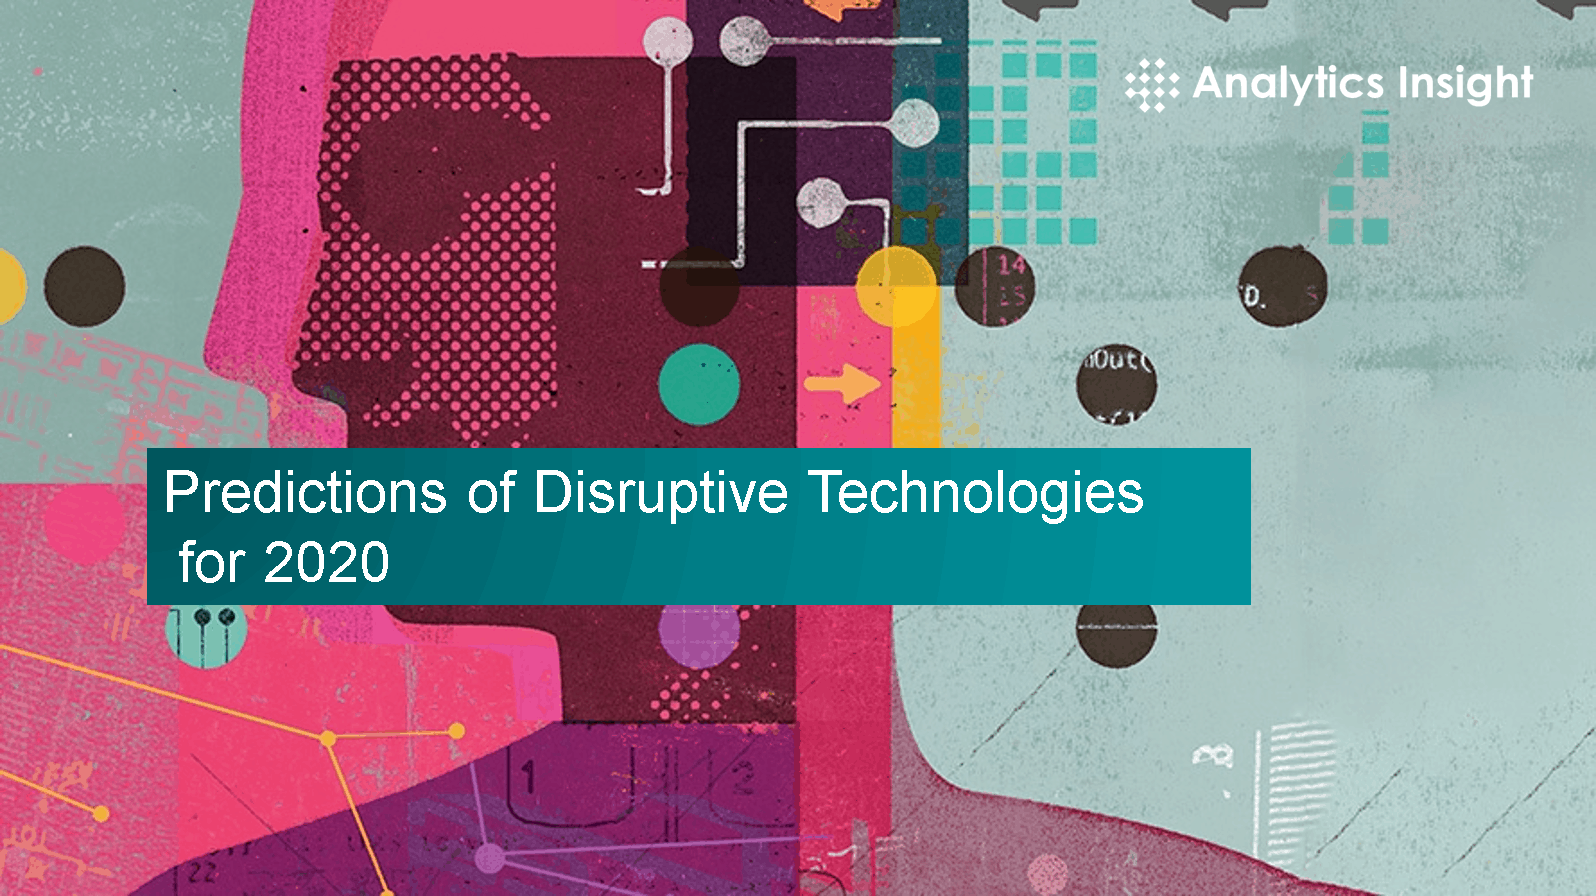 Predictions of Disruptive Technologies for 2020